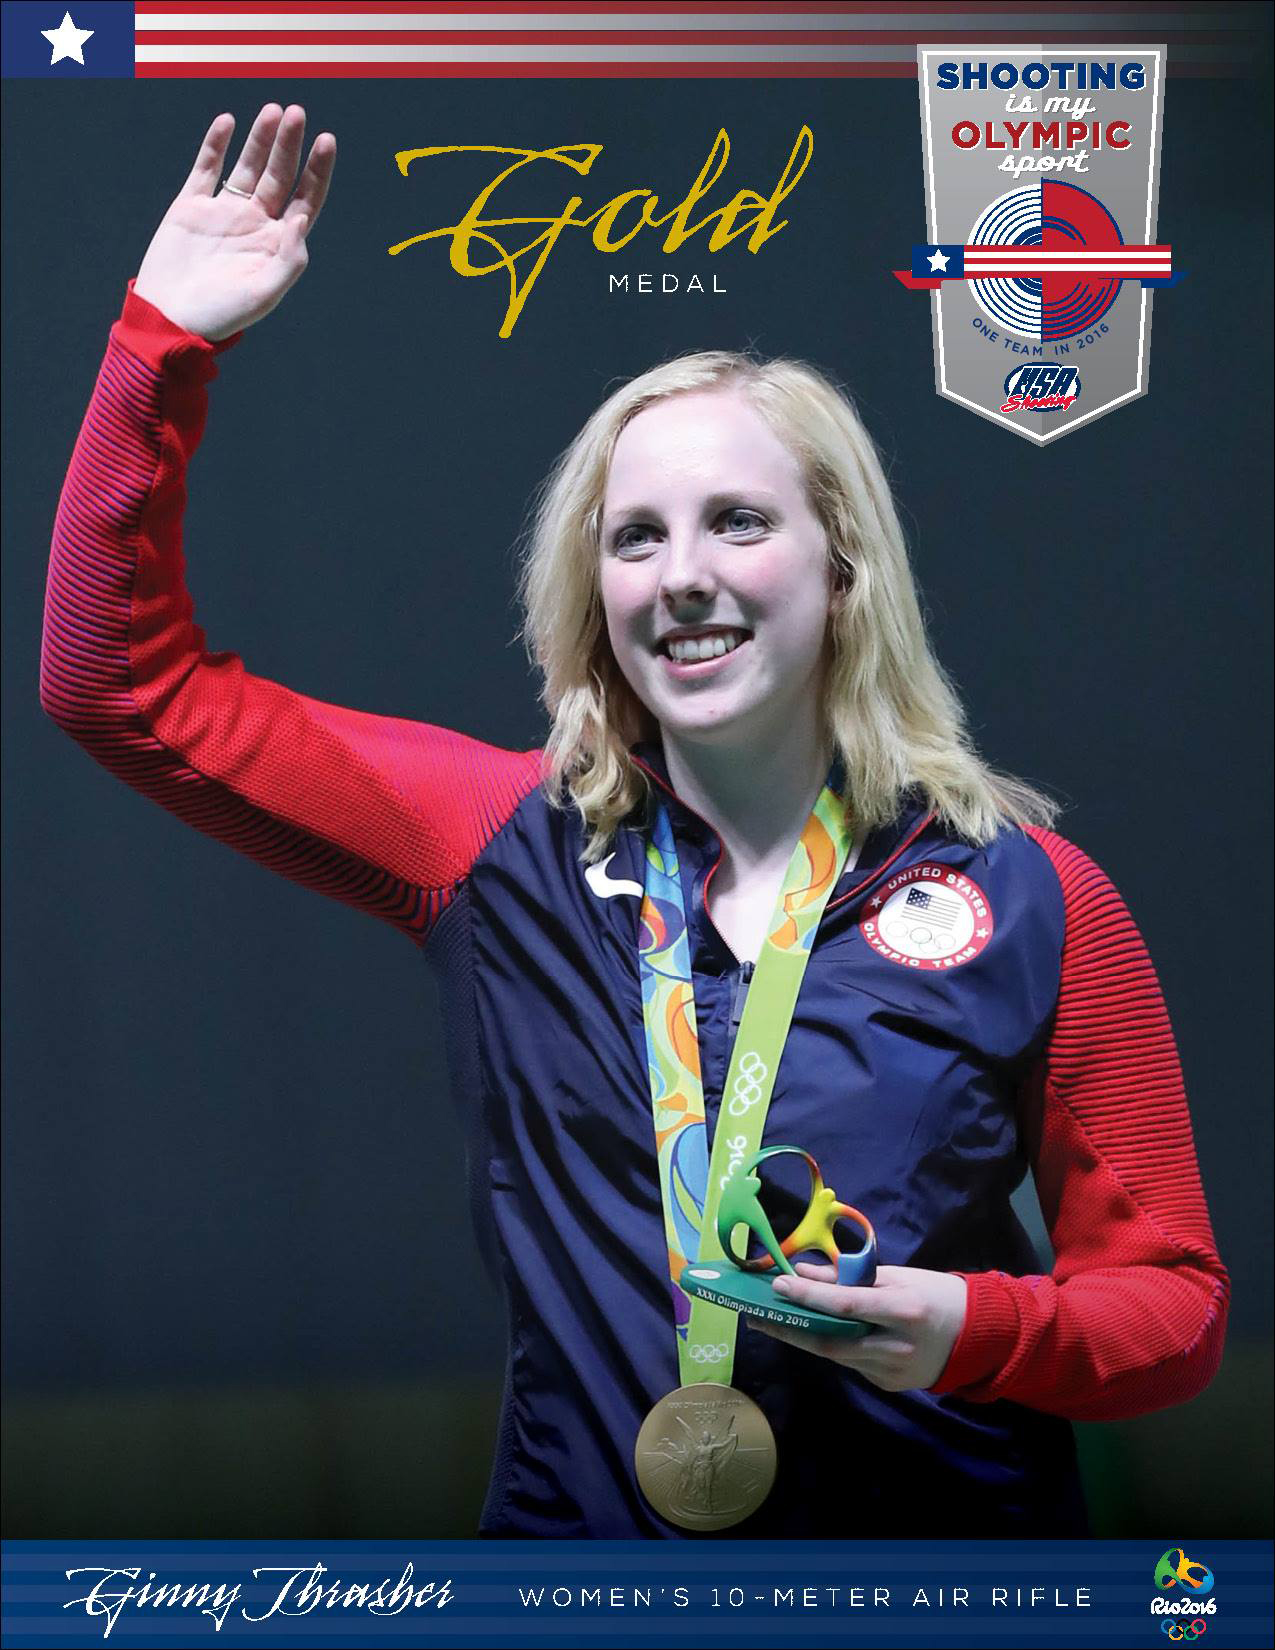 The first medal awarded during the 2016 Rio Olympic Games was in Women's Air Rifle. 19-year old Ginny Thrasher had a golden performance during her first Olympic appearance and won the Gold Medal for Team USA.